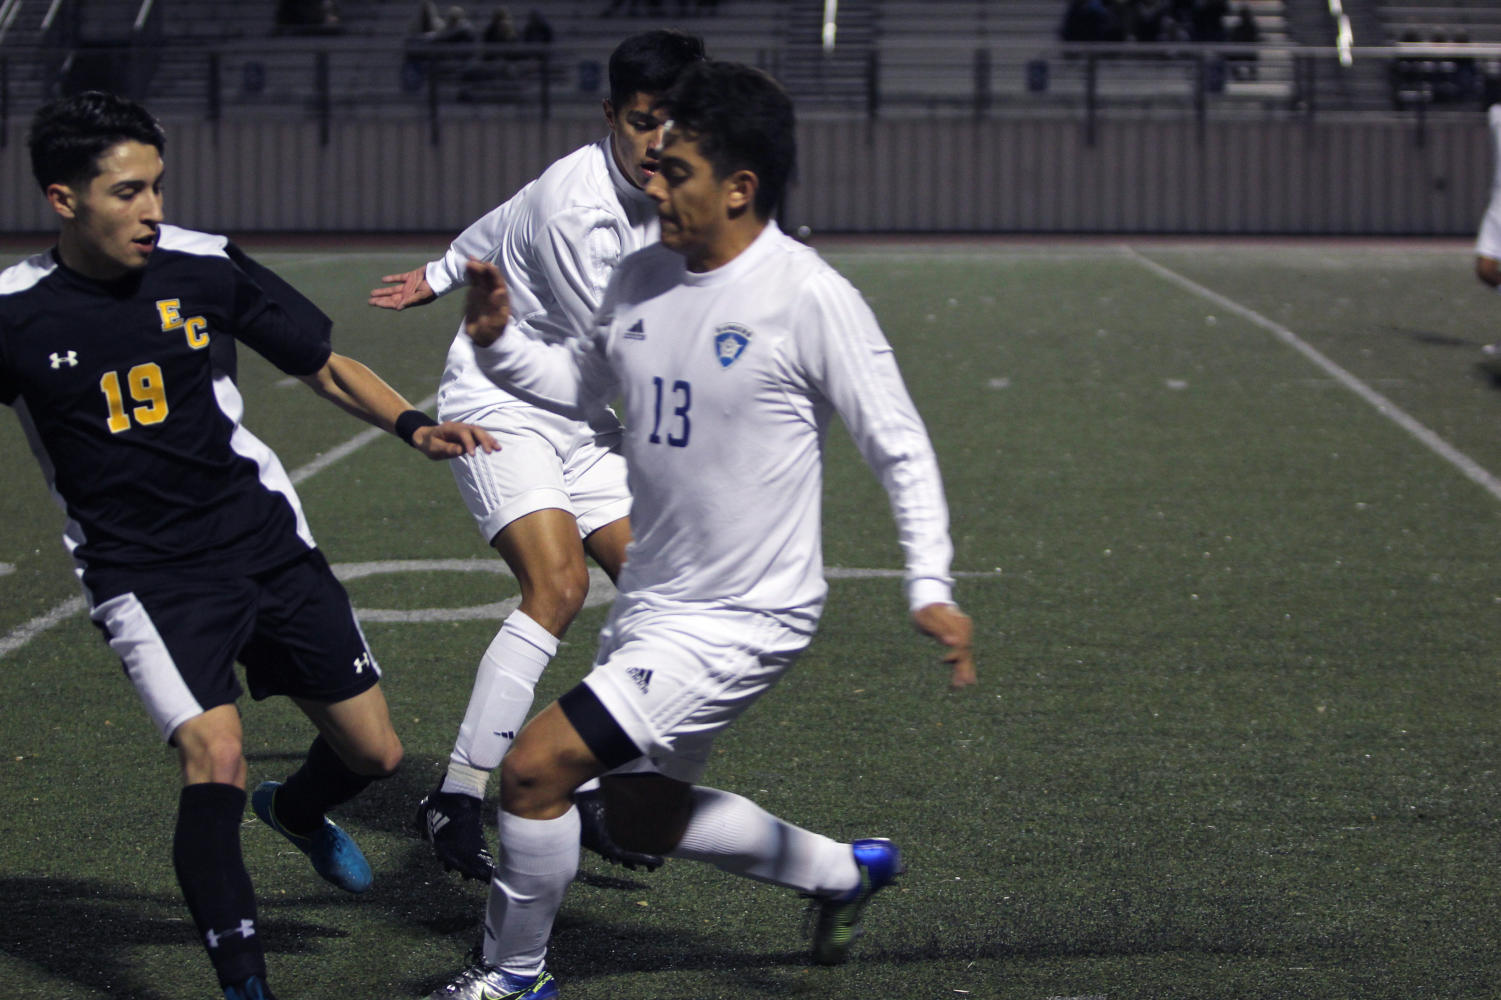 Senior Nathaniel Diaz slices through the defense during the teams 2-0 victory over East Central at home on Feb 2.